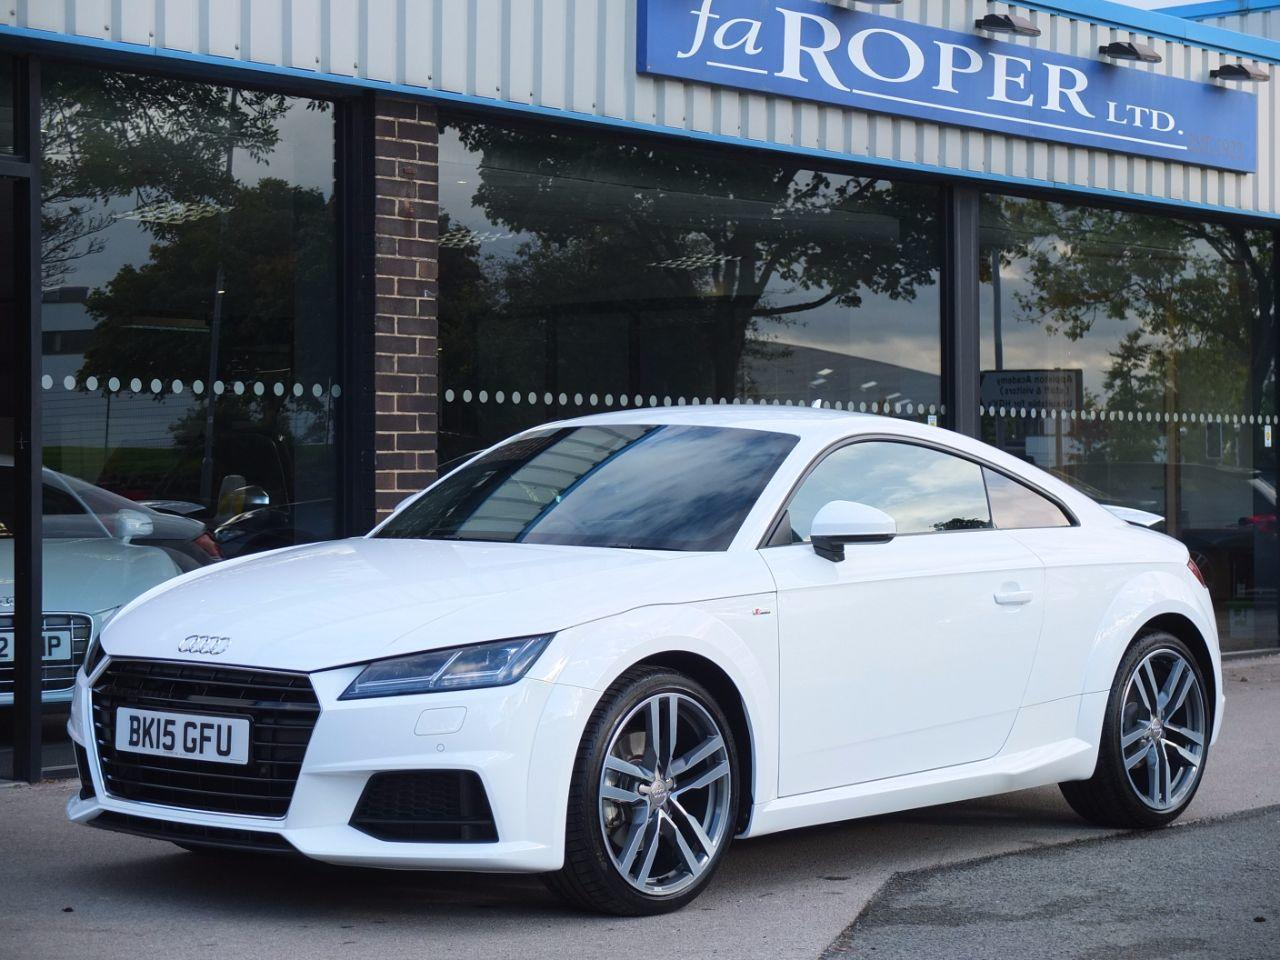 Audi TT Coupe 2.0 TDI S Line Ultra 190ps Coupe Diesel Ibis White